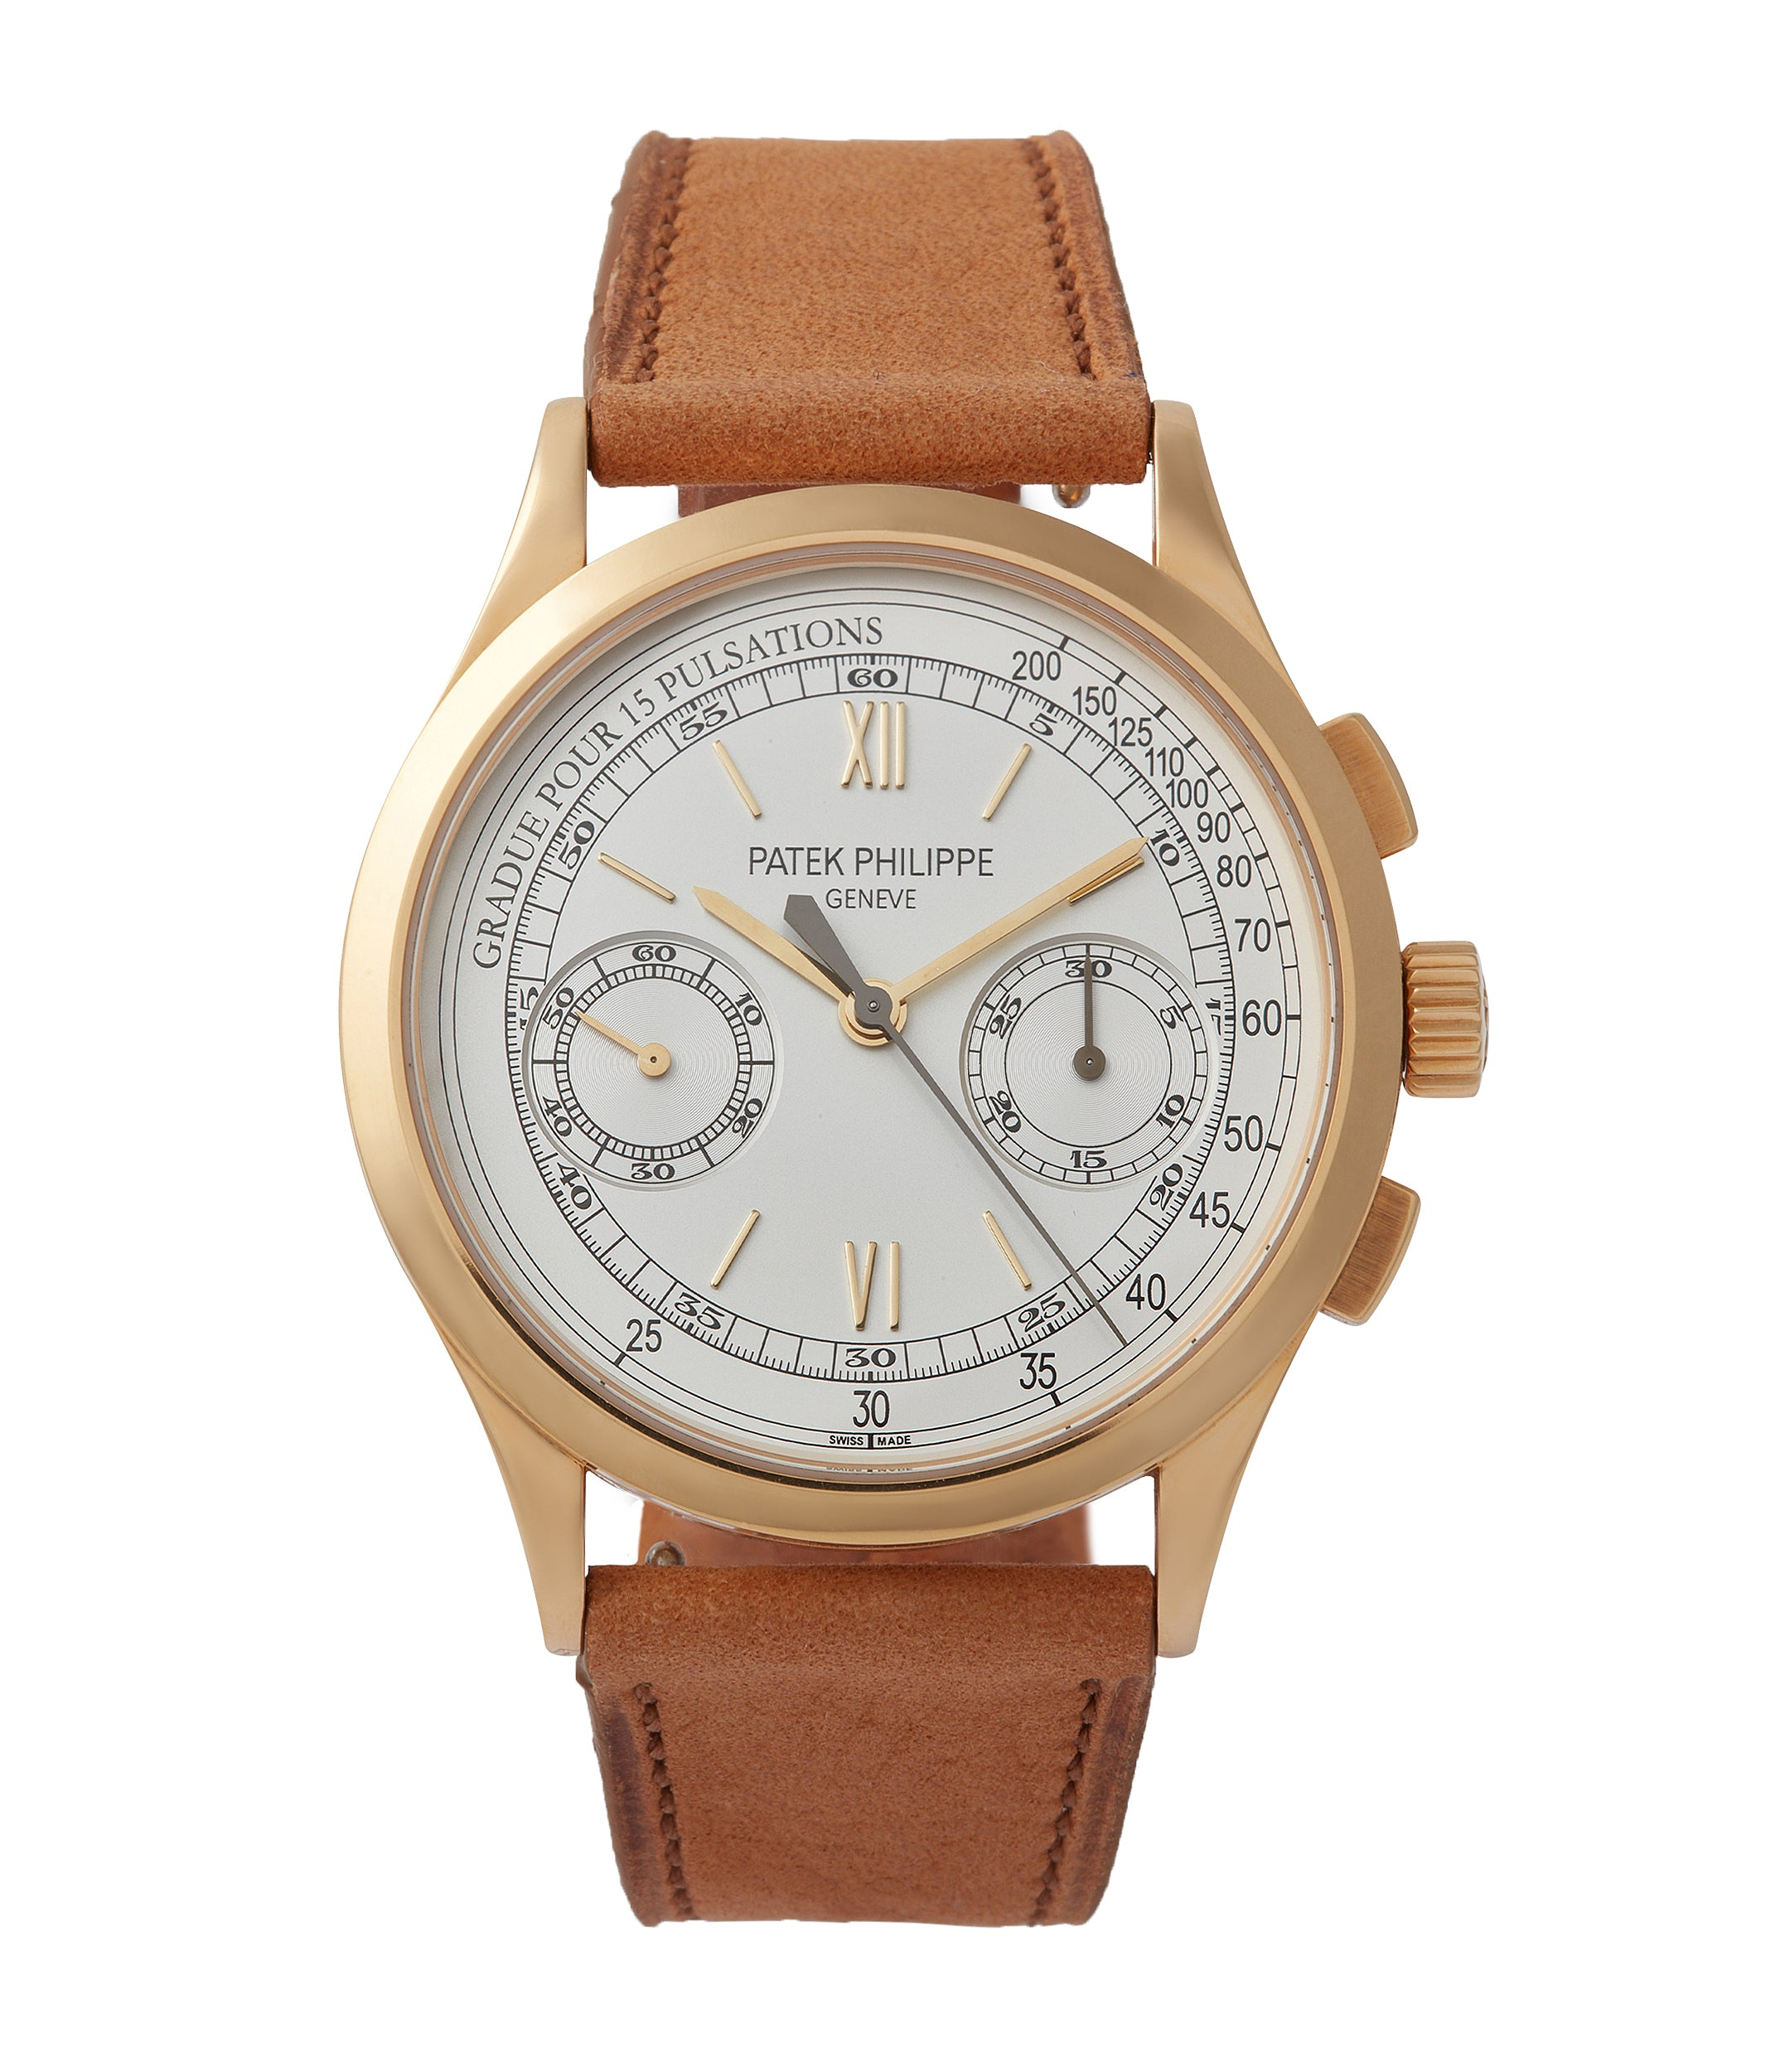 buy Patek Philippe 5170J-001 Chronograph yellow gold dress pre-owned watch for sale online at A Collected Man London UK specialist of rare watches